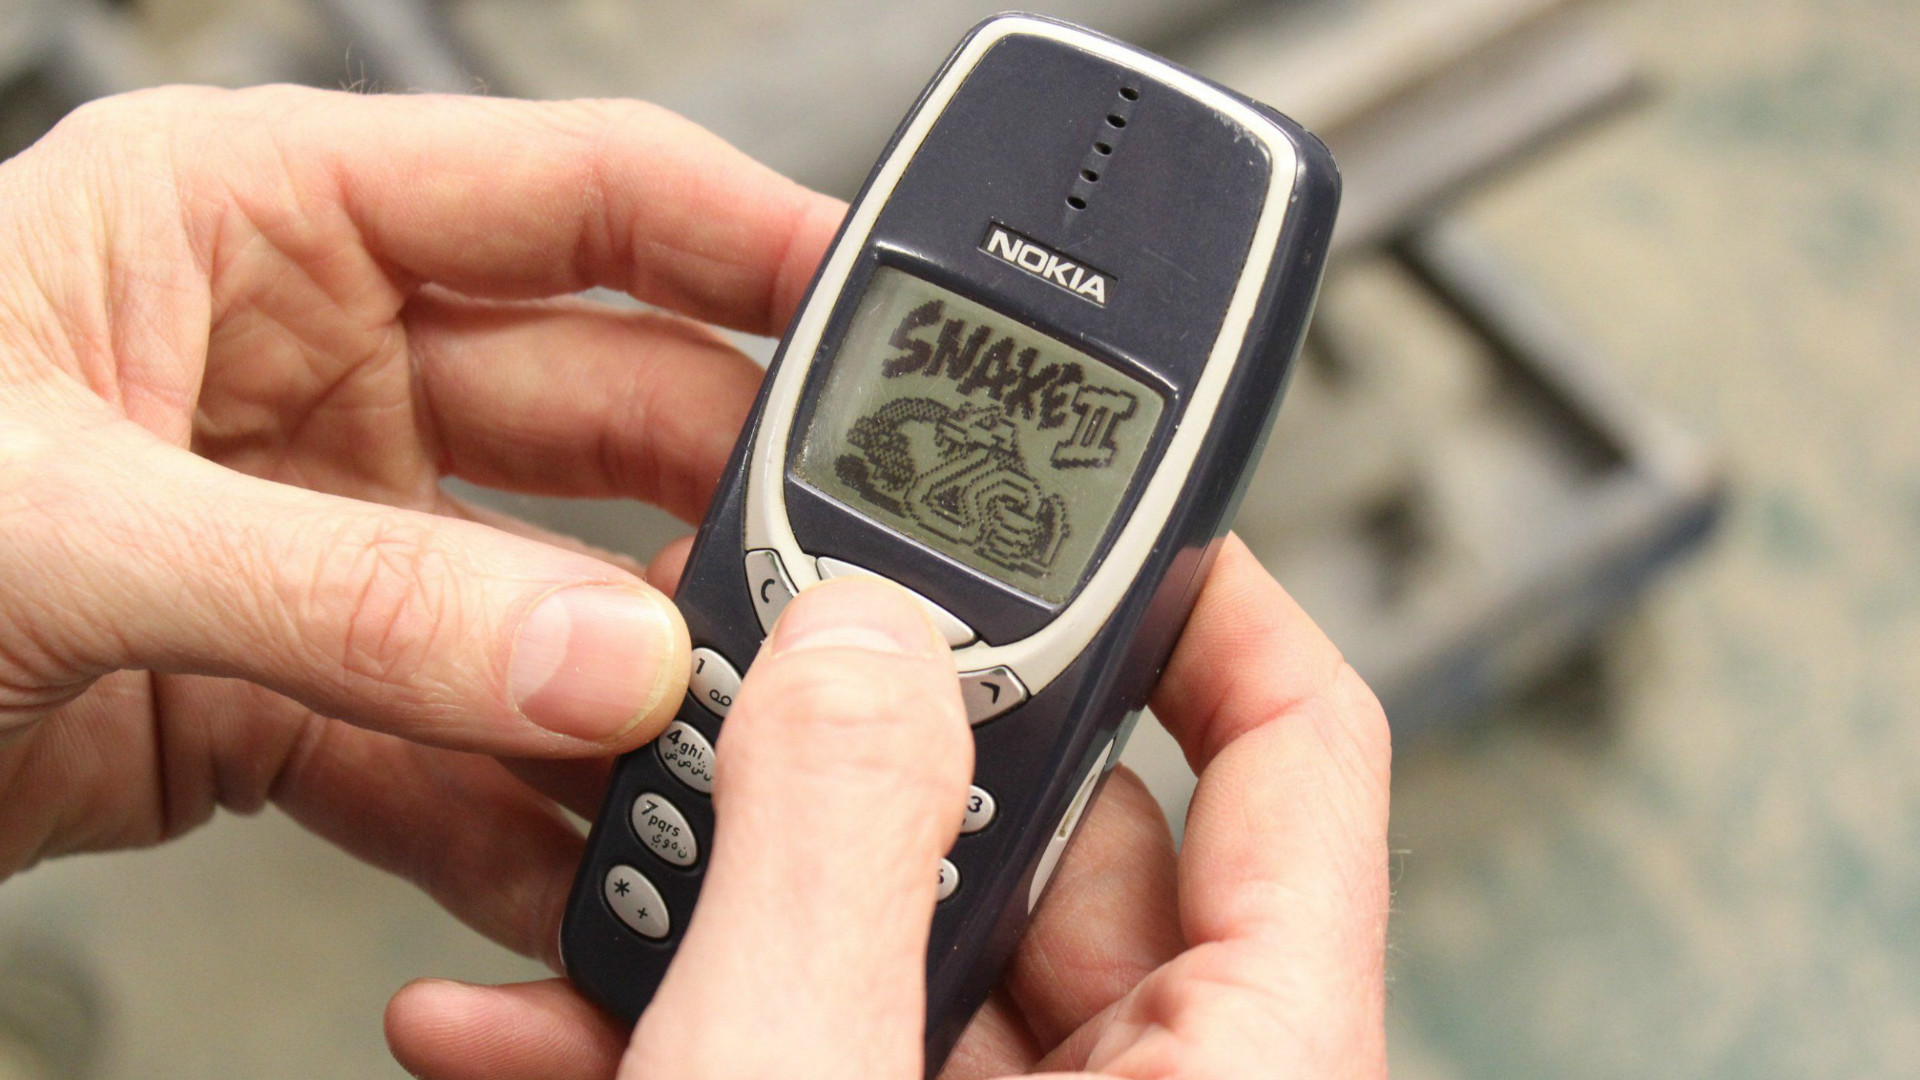 The Nokia 3310 mobile phone.